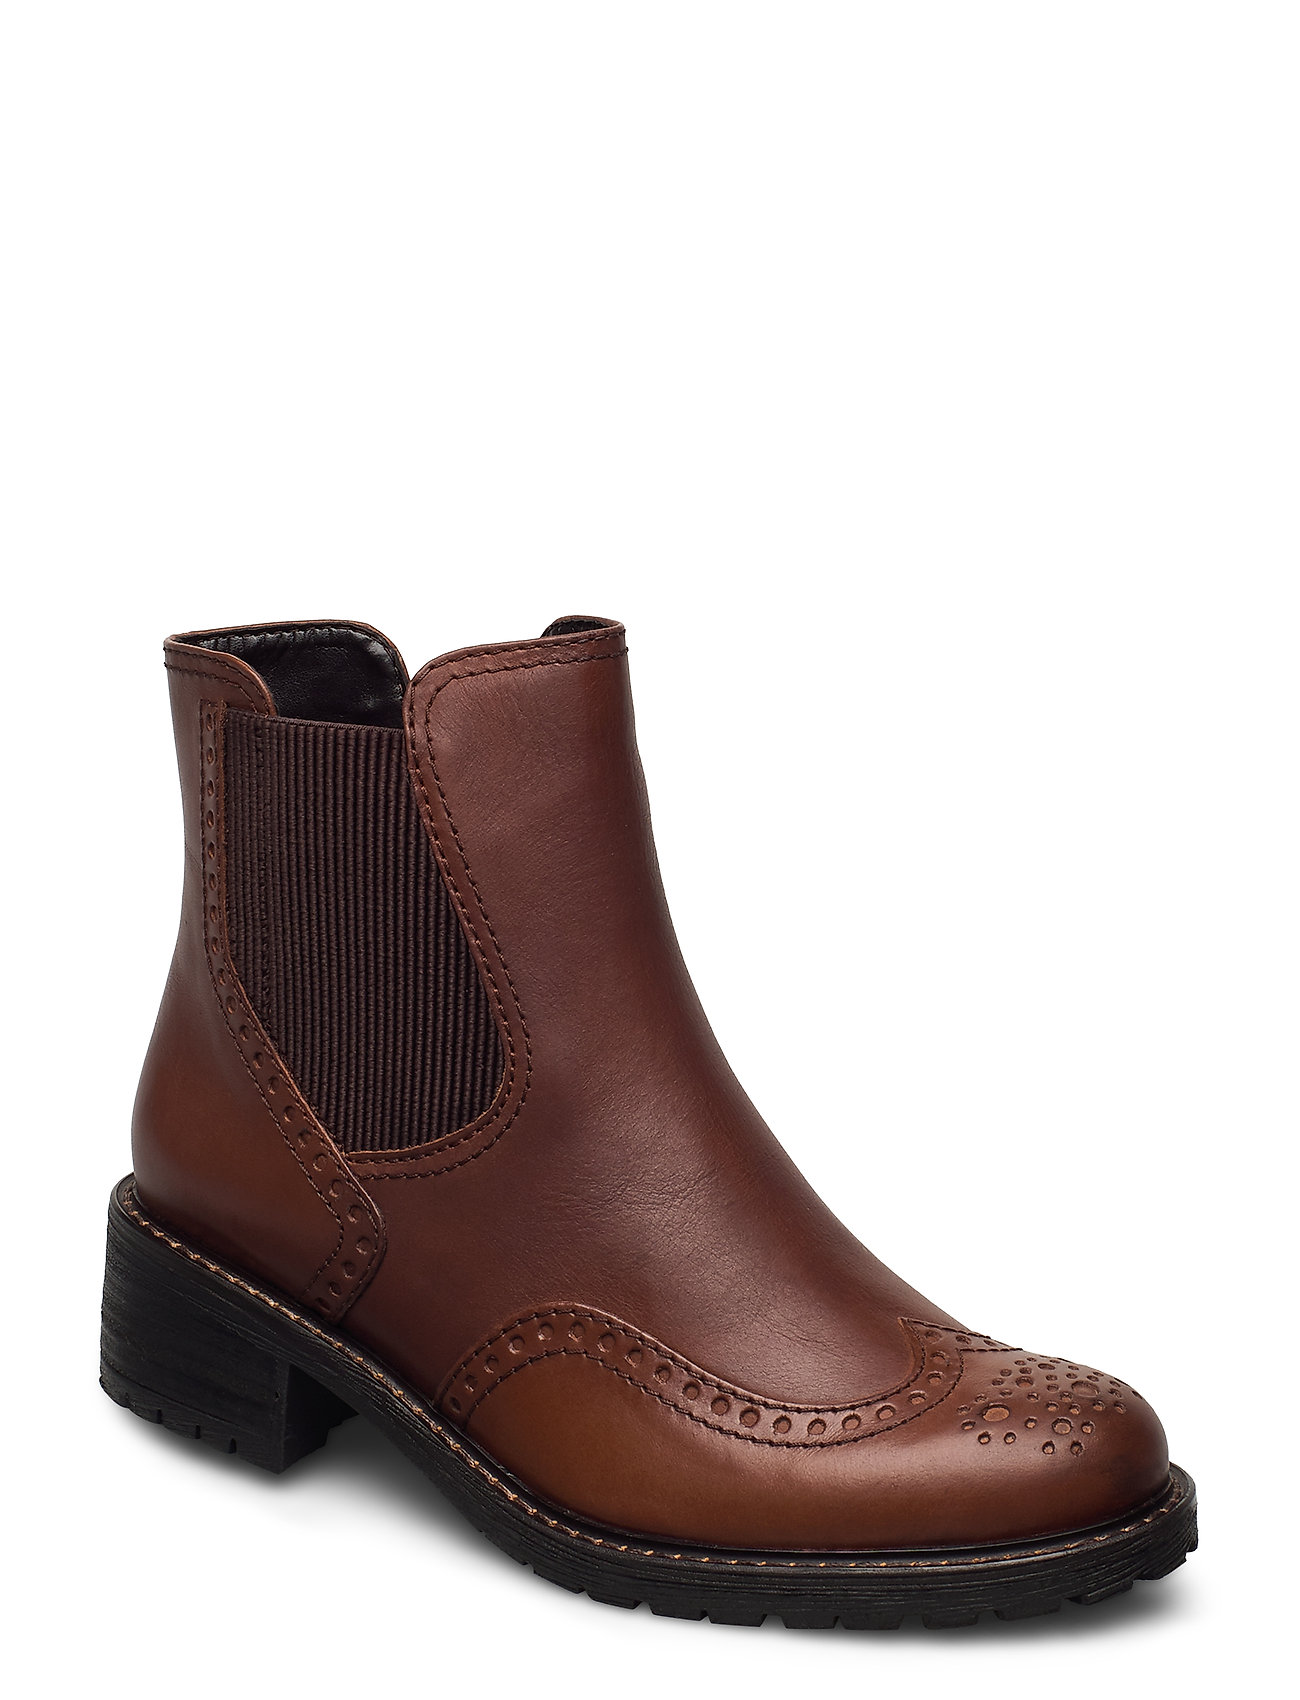 Image of Ankle Boot Shoes Boots Ankle Boots Ankle Boot - Flat Brun Gabor (3440759967)